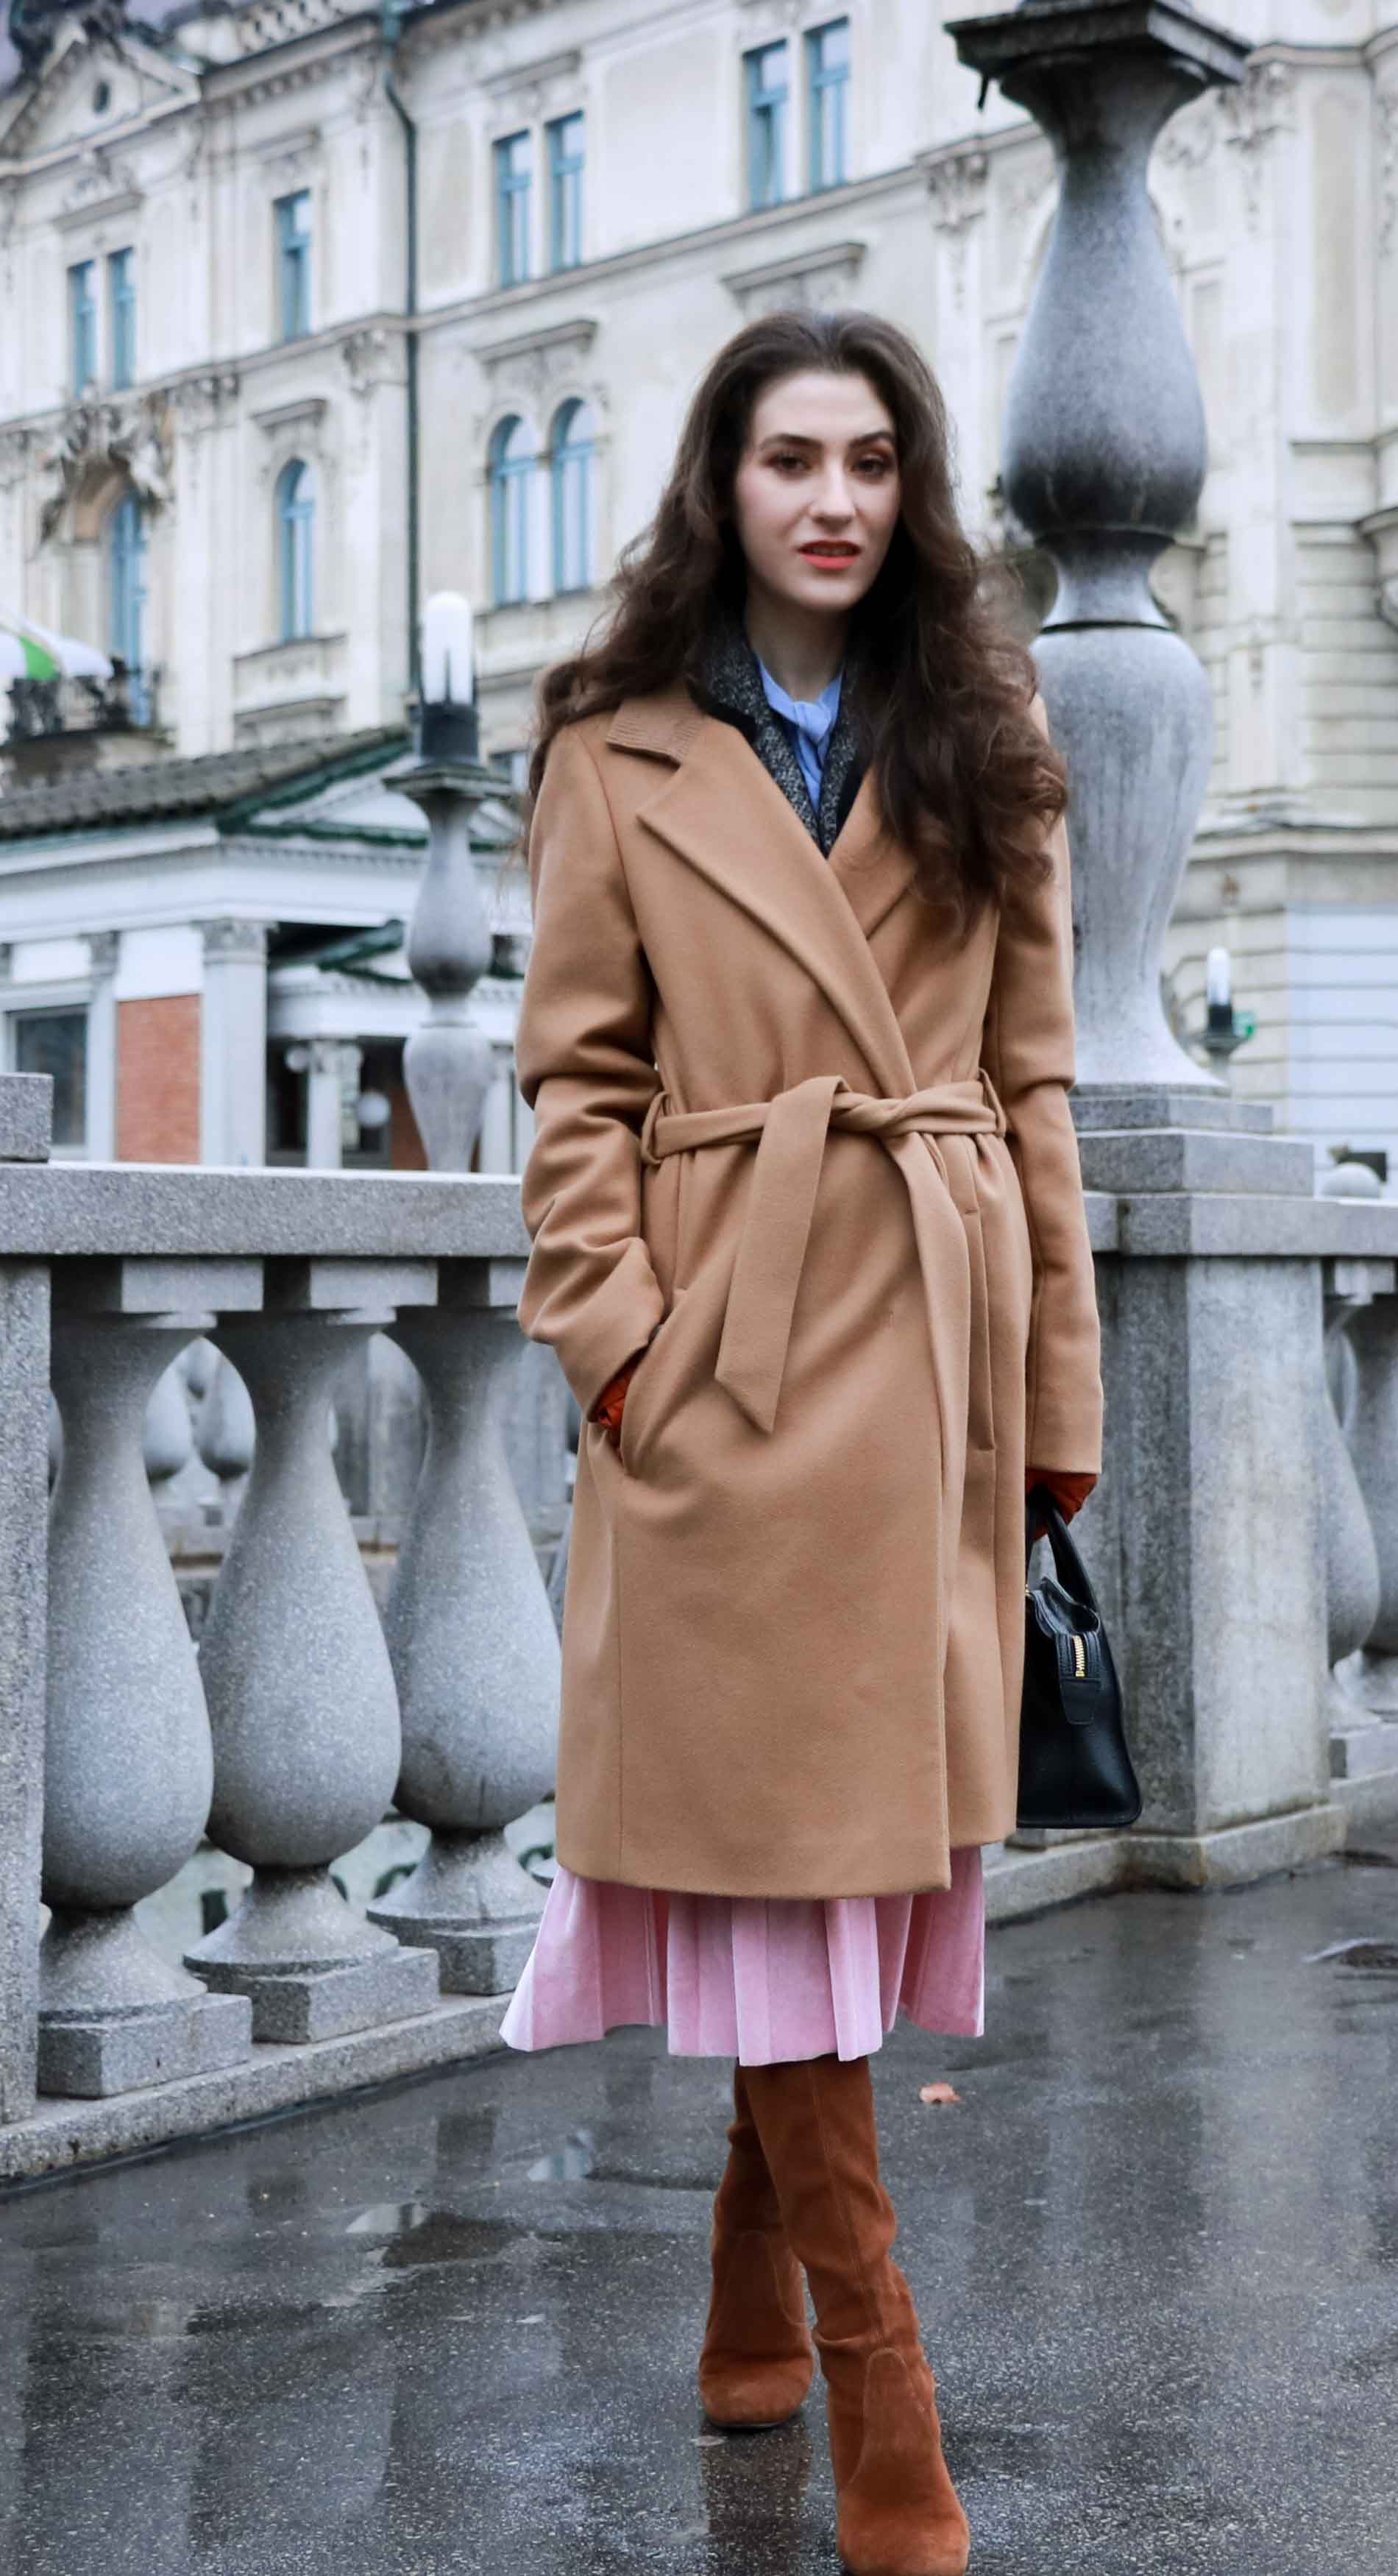 Fashion Blogger Veronika Lipar of Brunette from Wall Street wearing elegant winter outfit, ESCADA wrap camel coat, pink velvet midi pleated skirt, brown Stuart Weitzman Highland over the knee boots, black top handle bag, leather gloves this Christmas